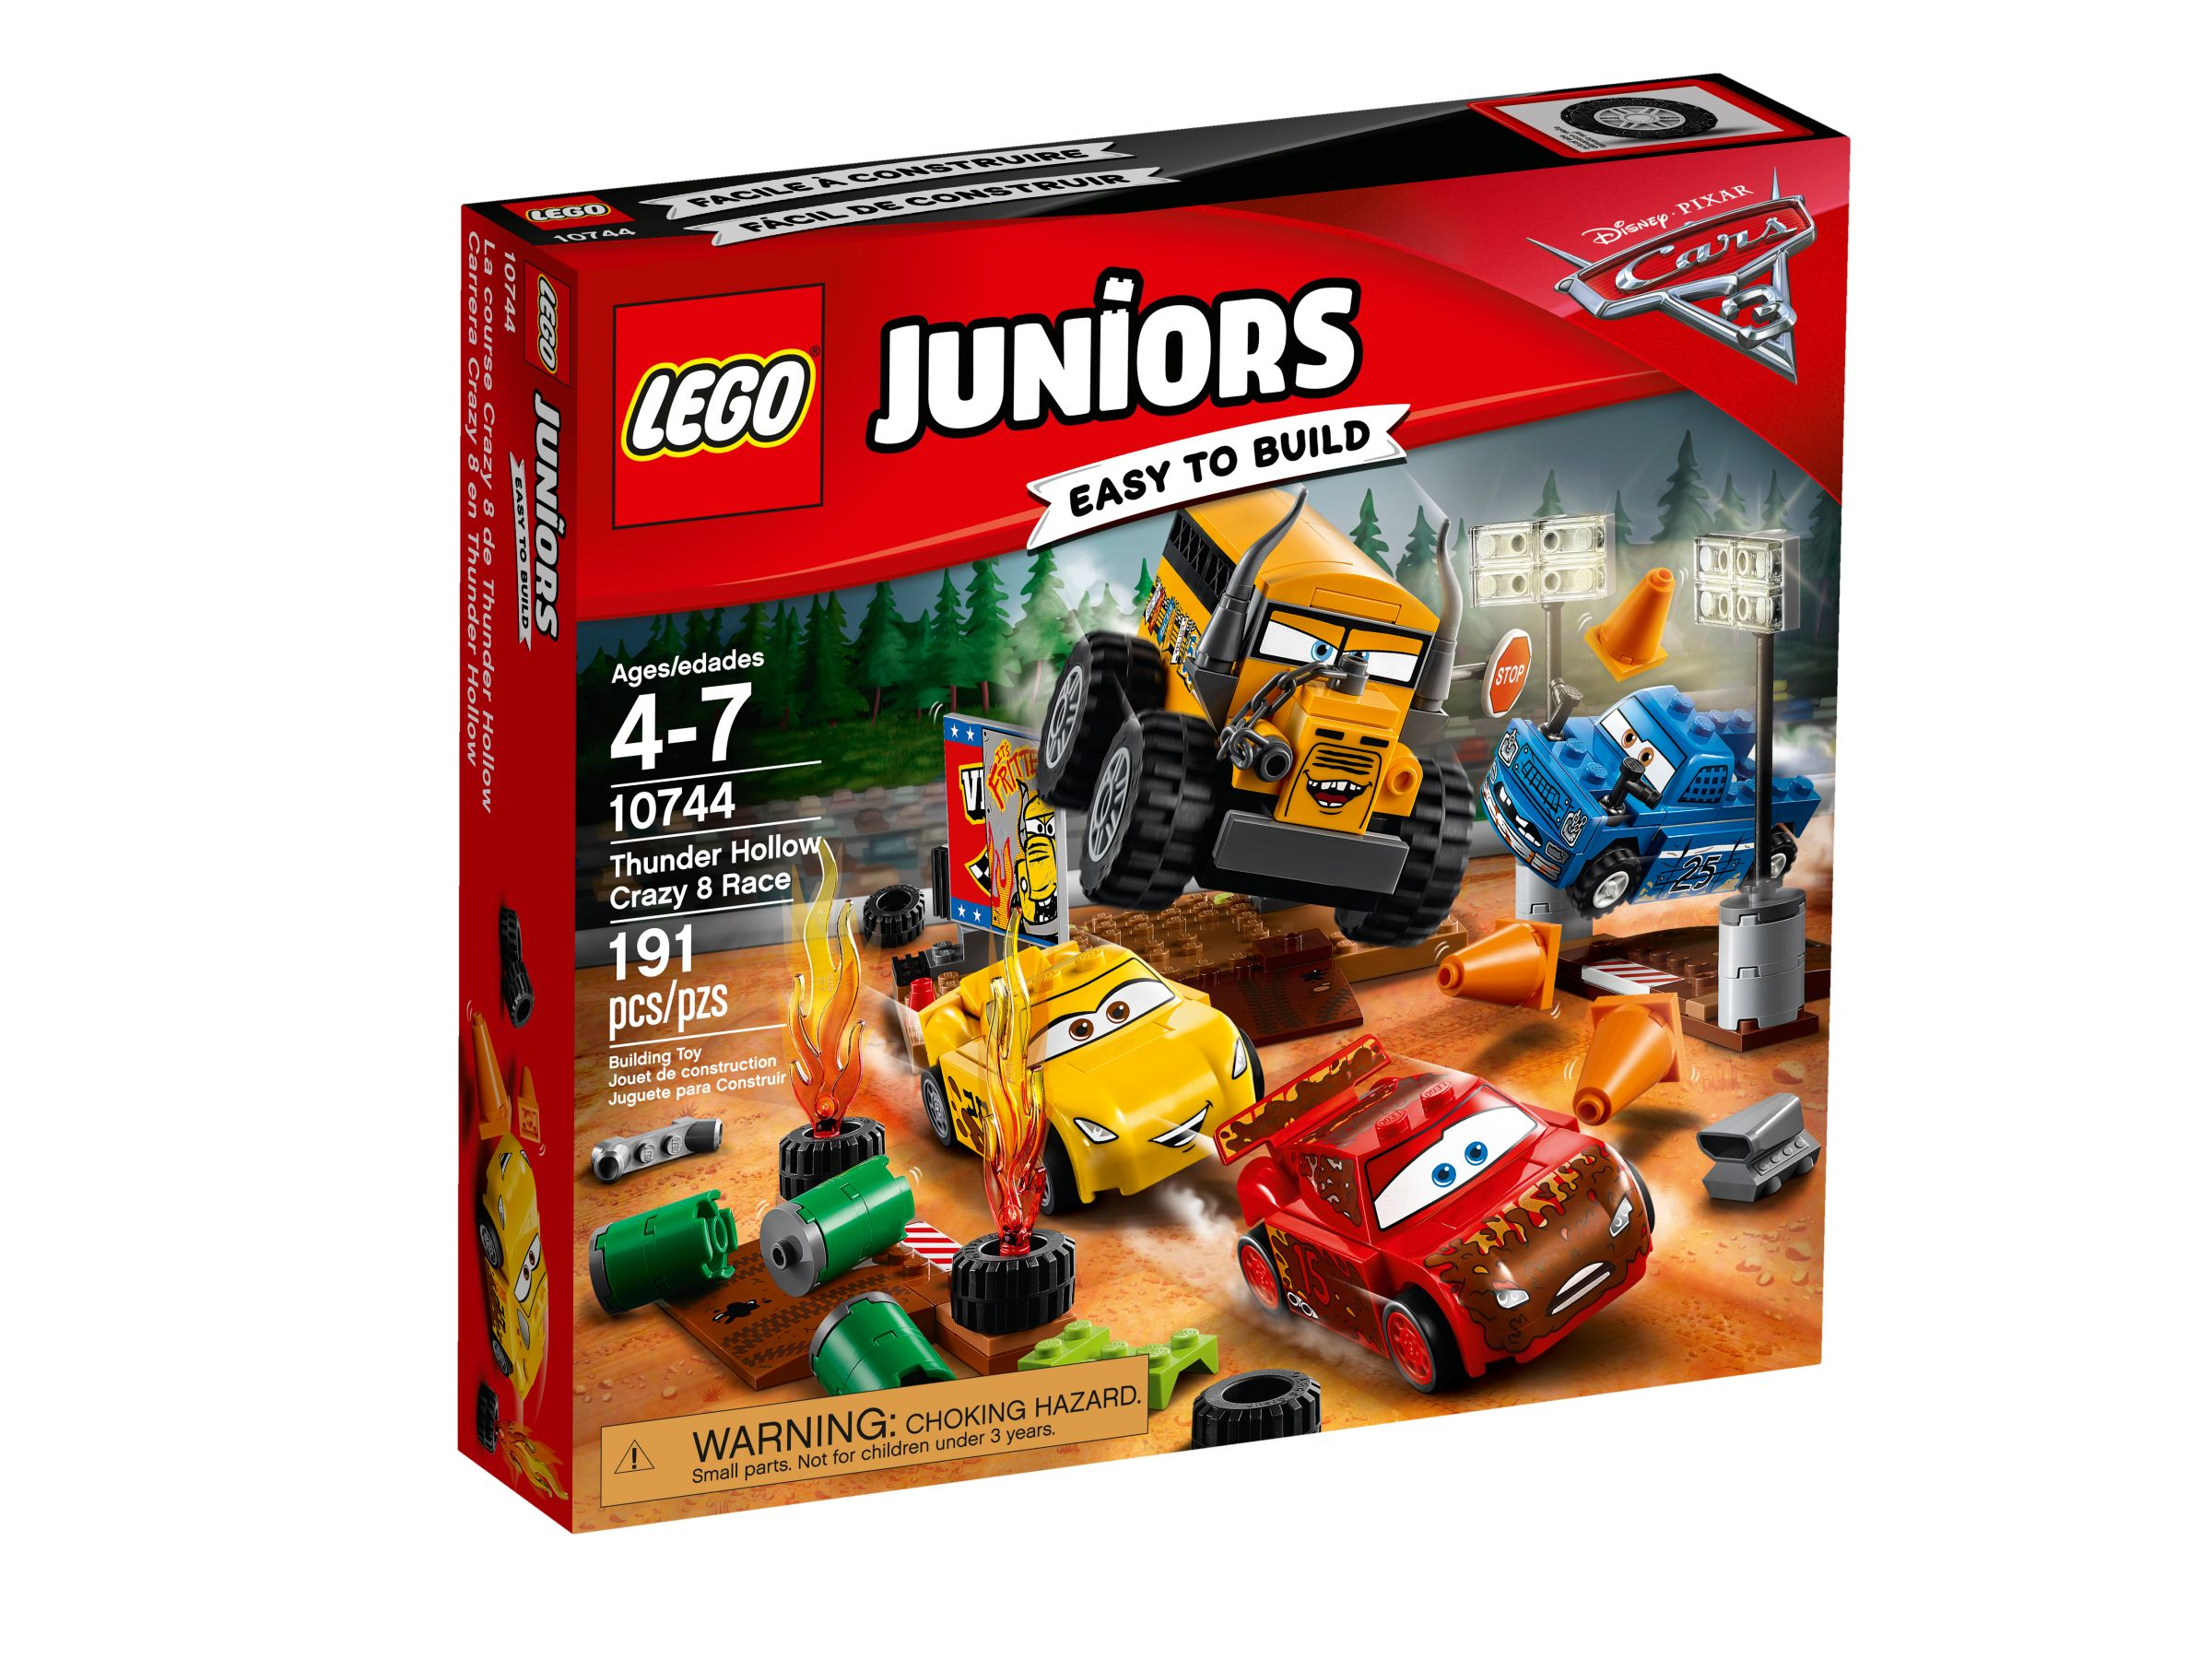 LEGO Juniors 10744 Crazy 8 Rennen in Thunder Hollow LEGO_10744_alt1.jpg